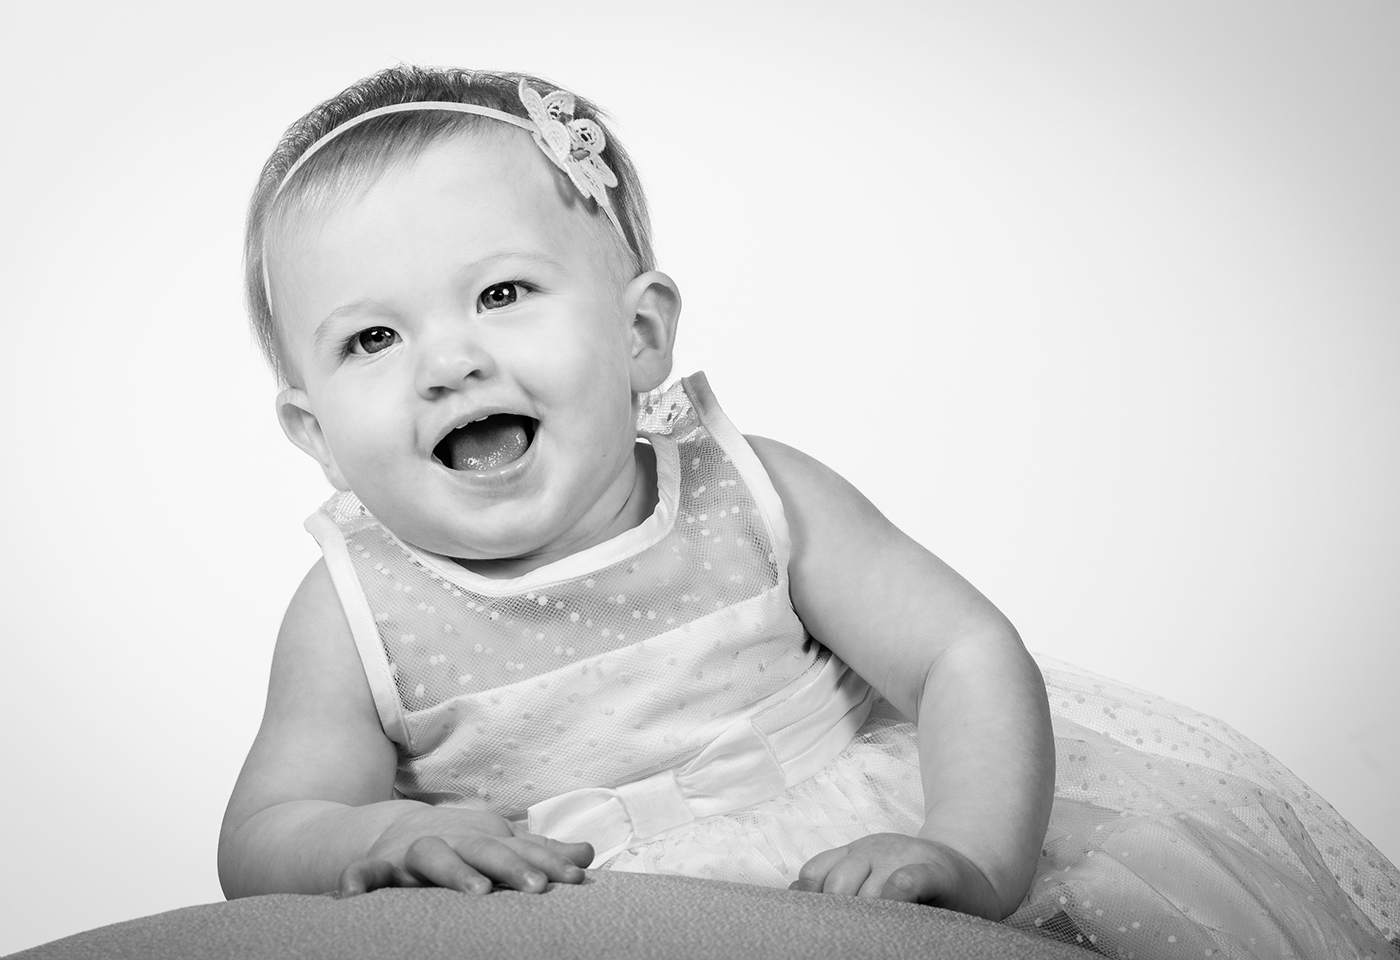 black and white baby portrait image